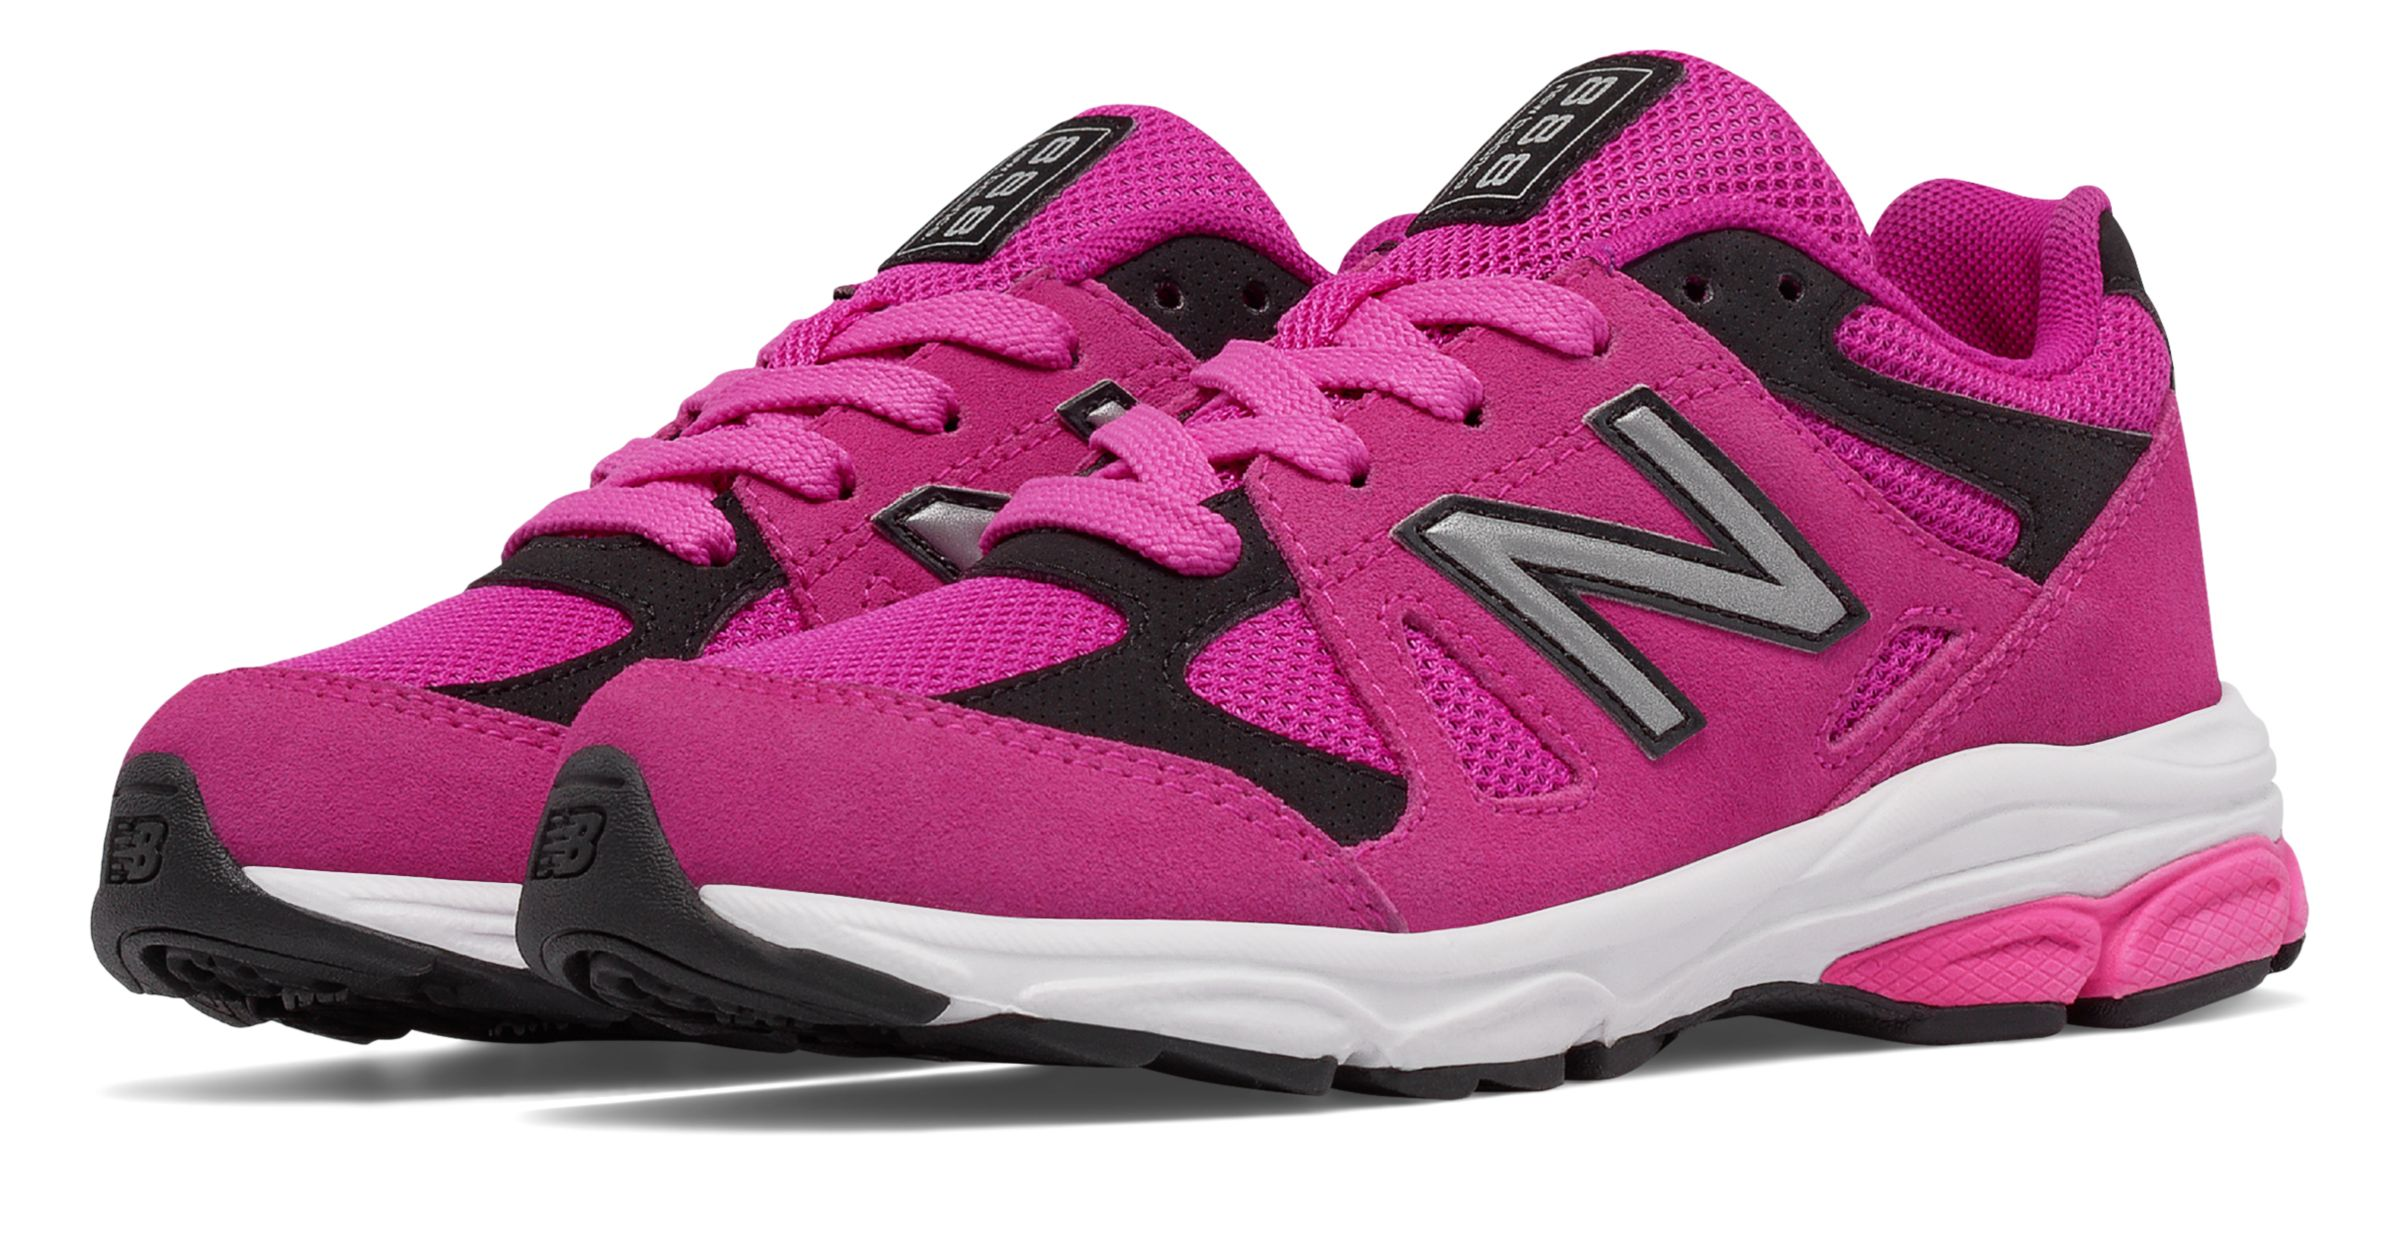 New Balance 888 Pre - school Girls Shoes Pink